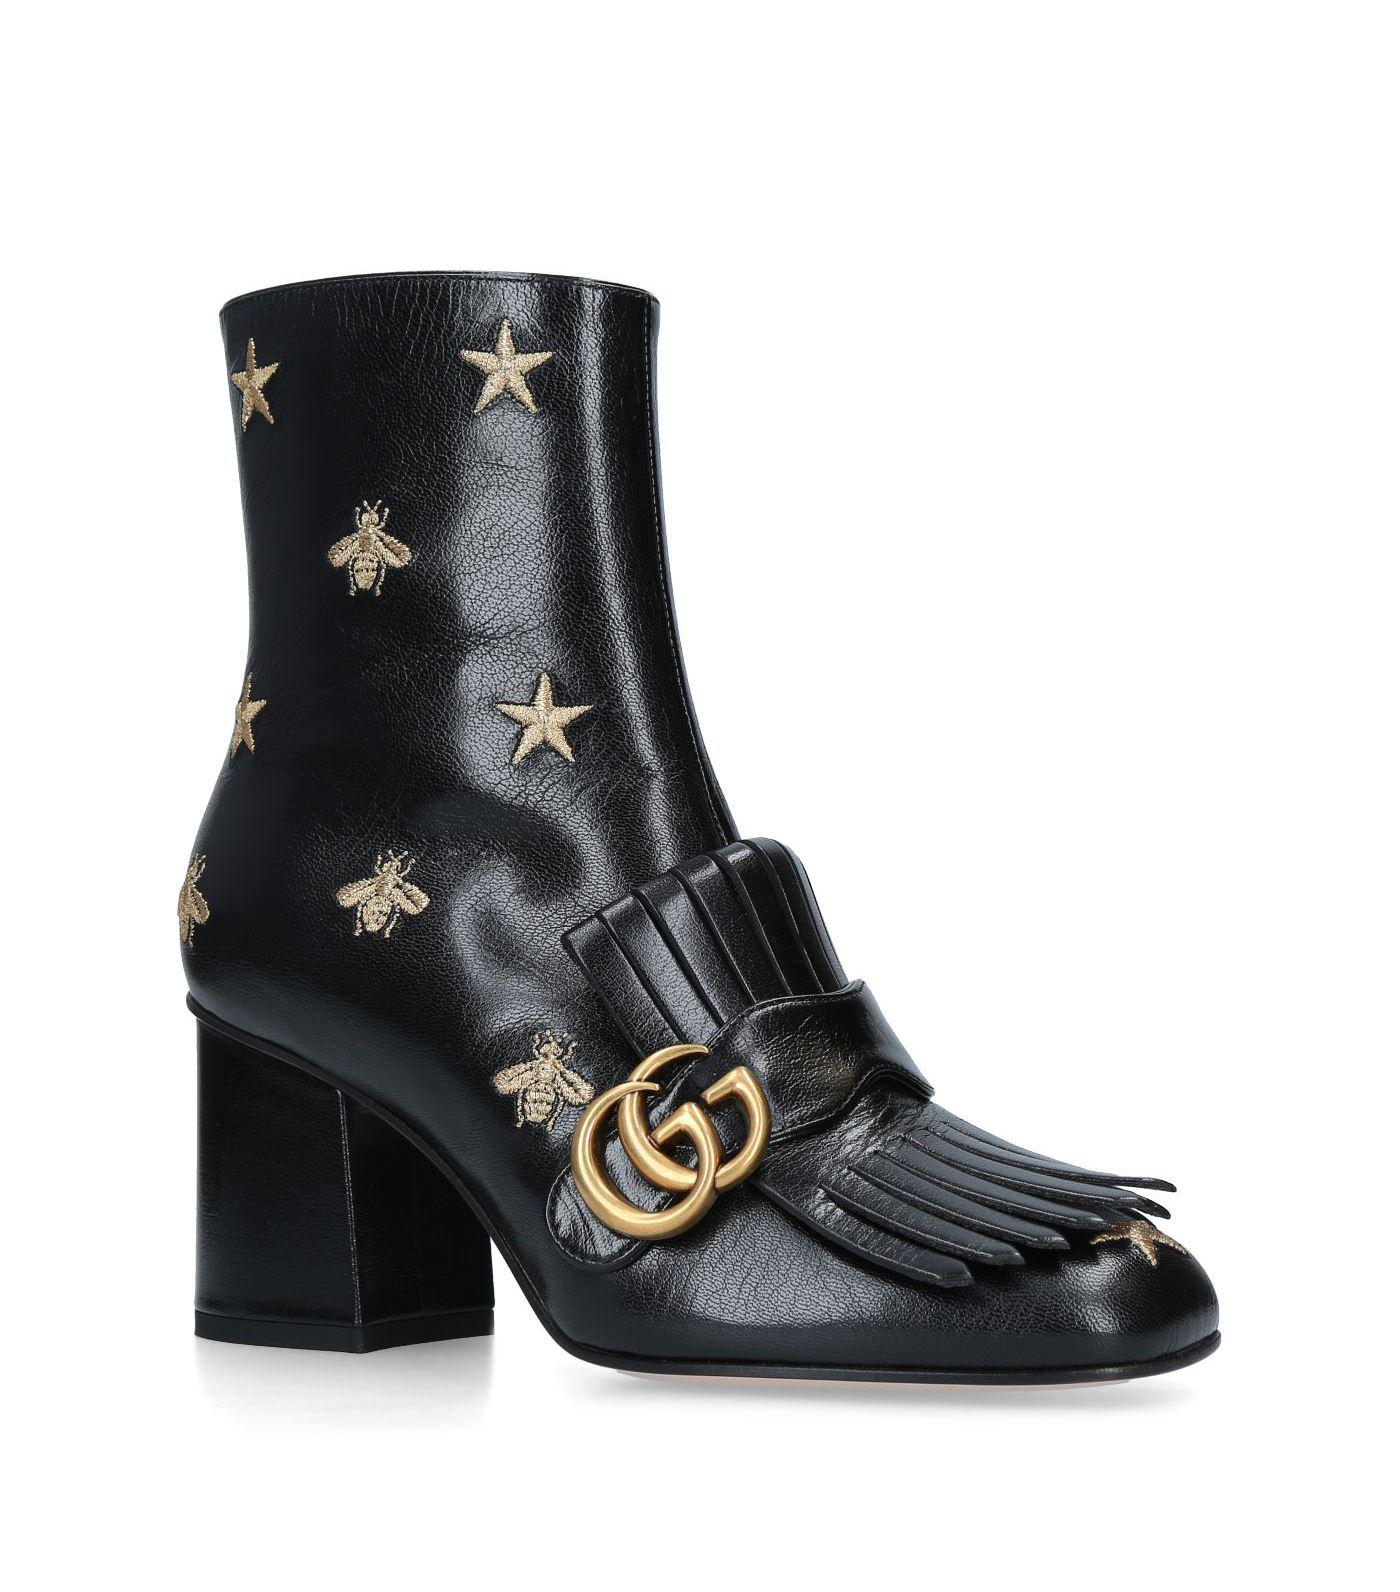 3b39daa0951 Lyst - Gucci Leather Marmont Ankle Boots 75 in Black